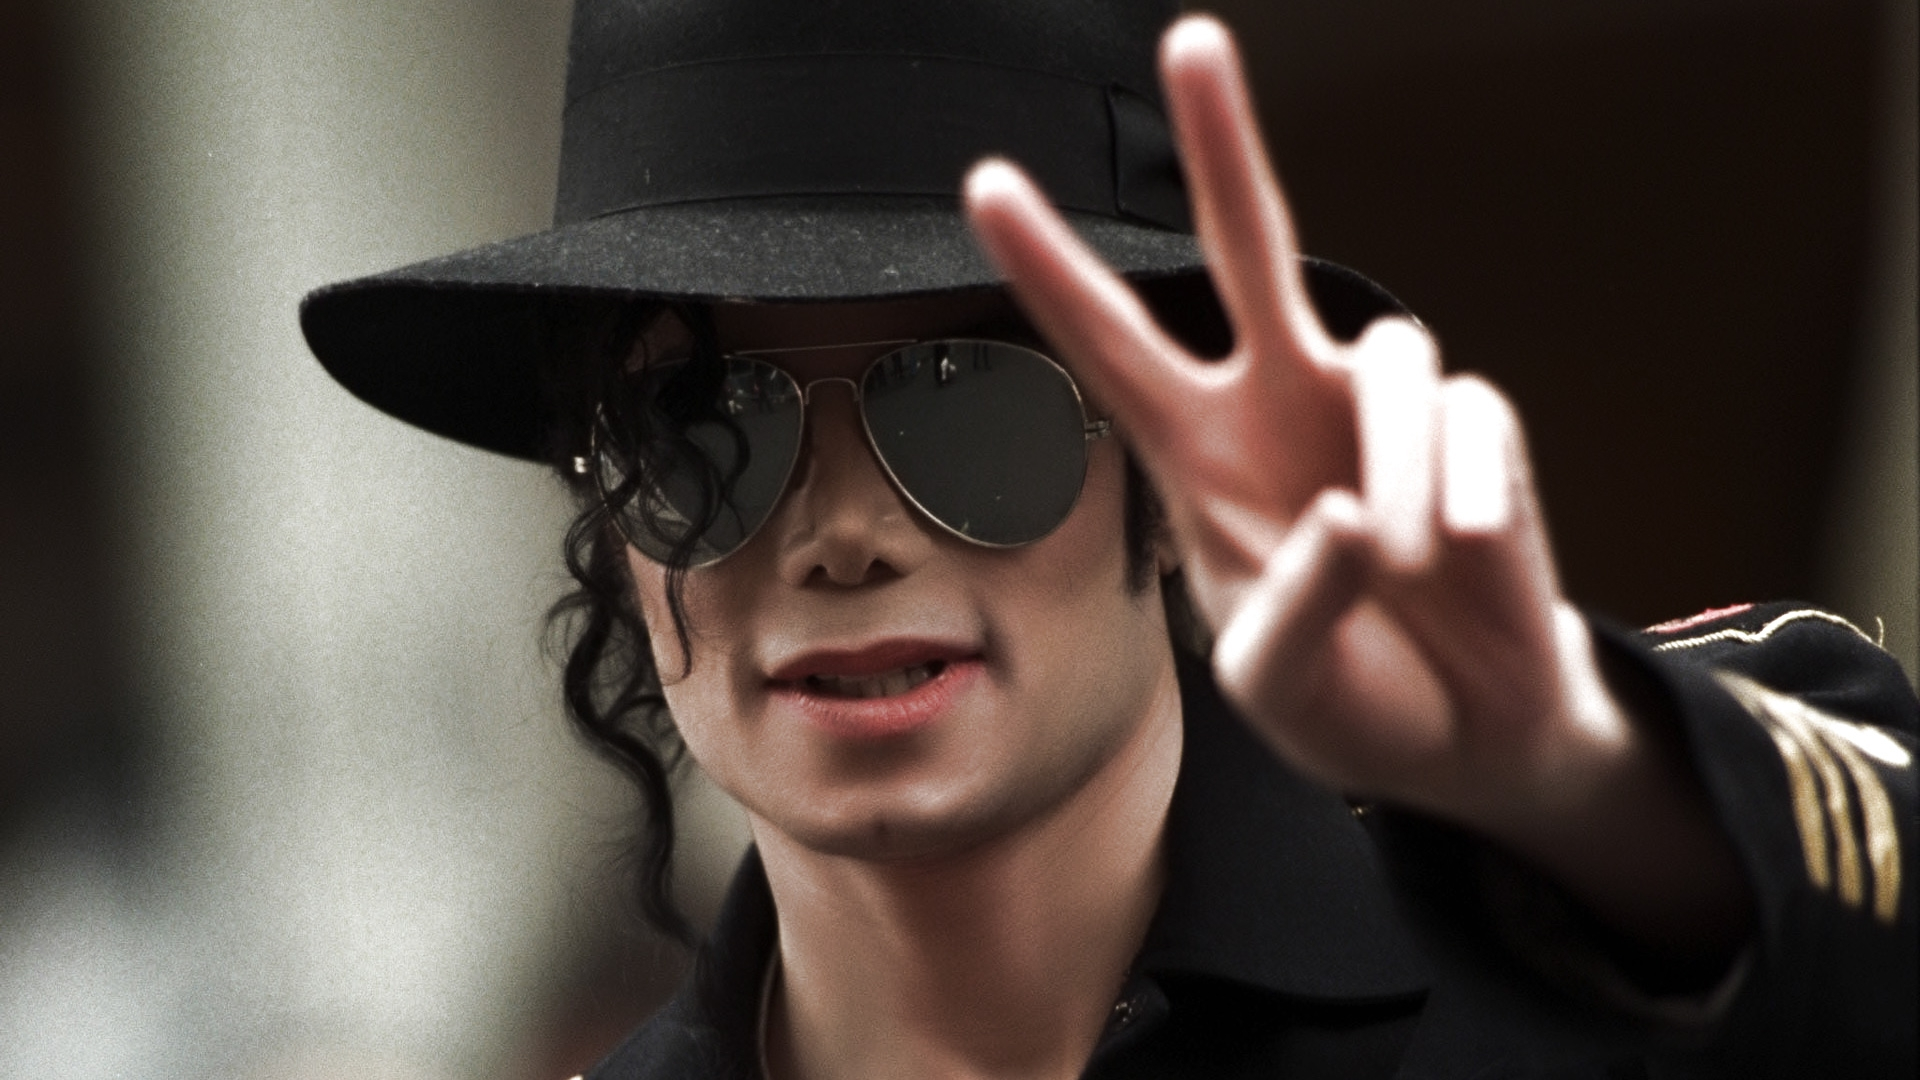 Michael Jackson Hd Wallpaper Free Download